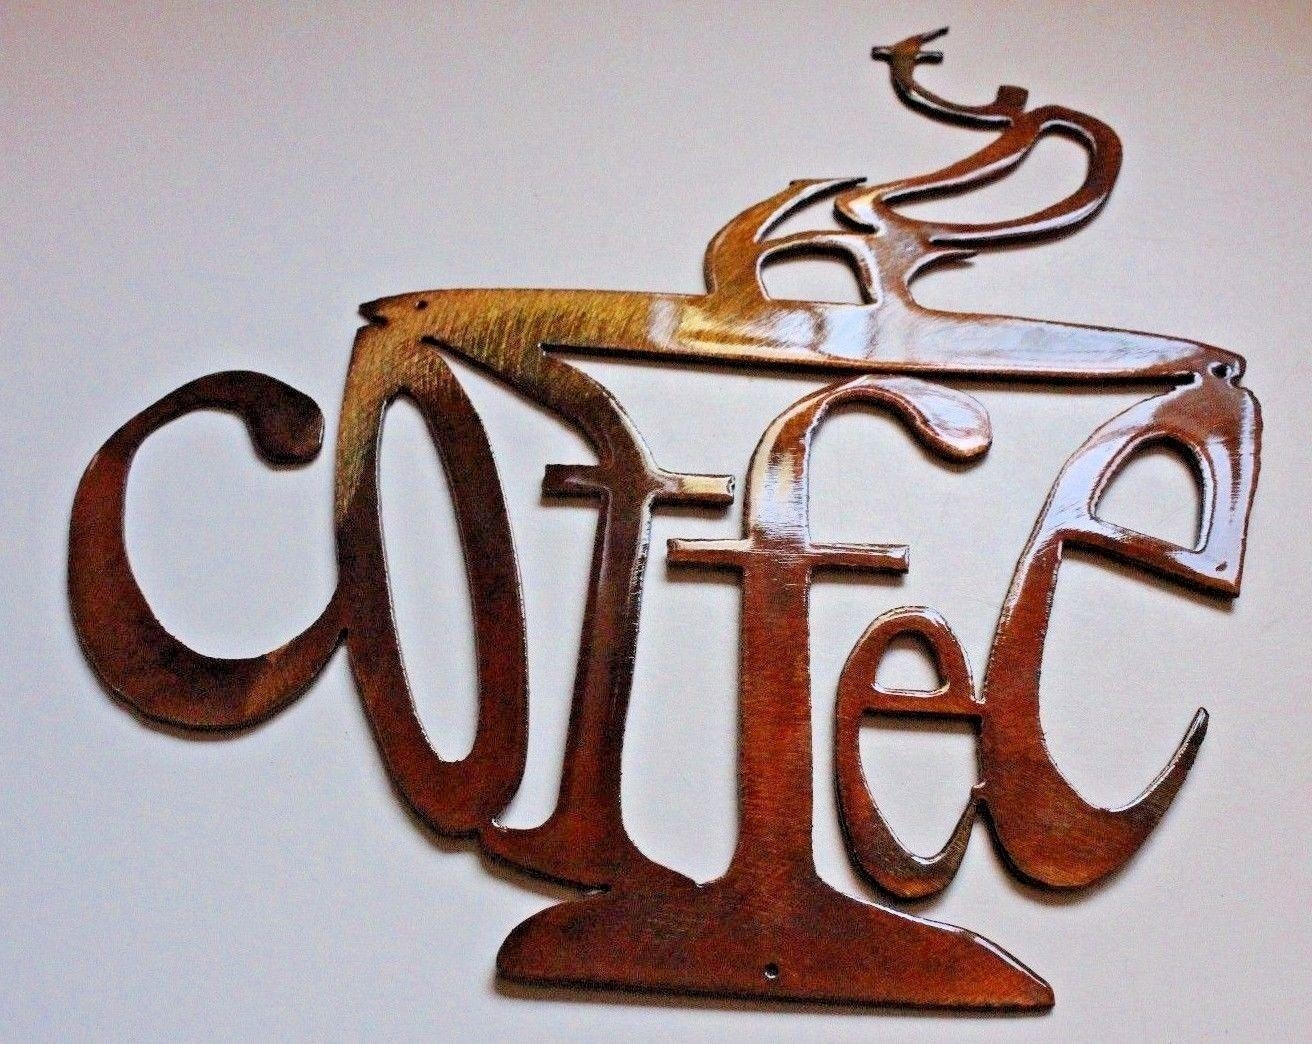 """Hot Coffee Cup Metal Wall Art Decor 9 3/4"""" Tall • $ (Image 14 of 20)"""